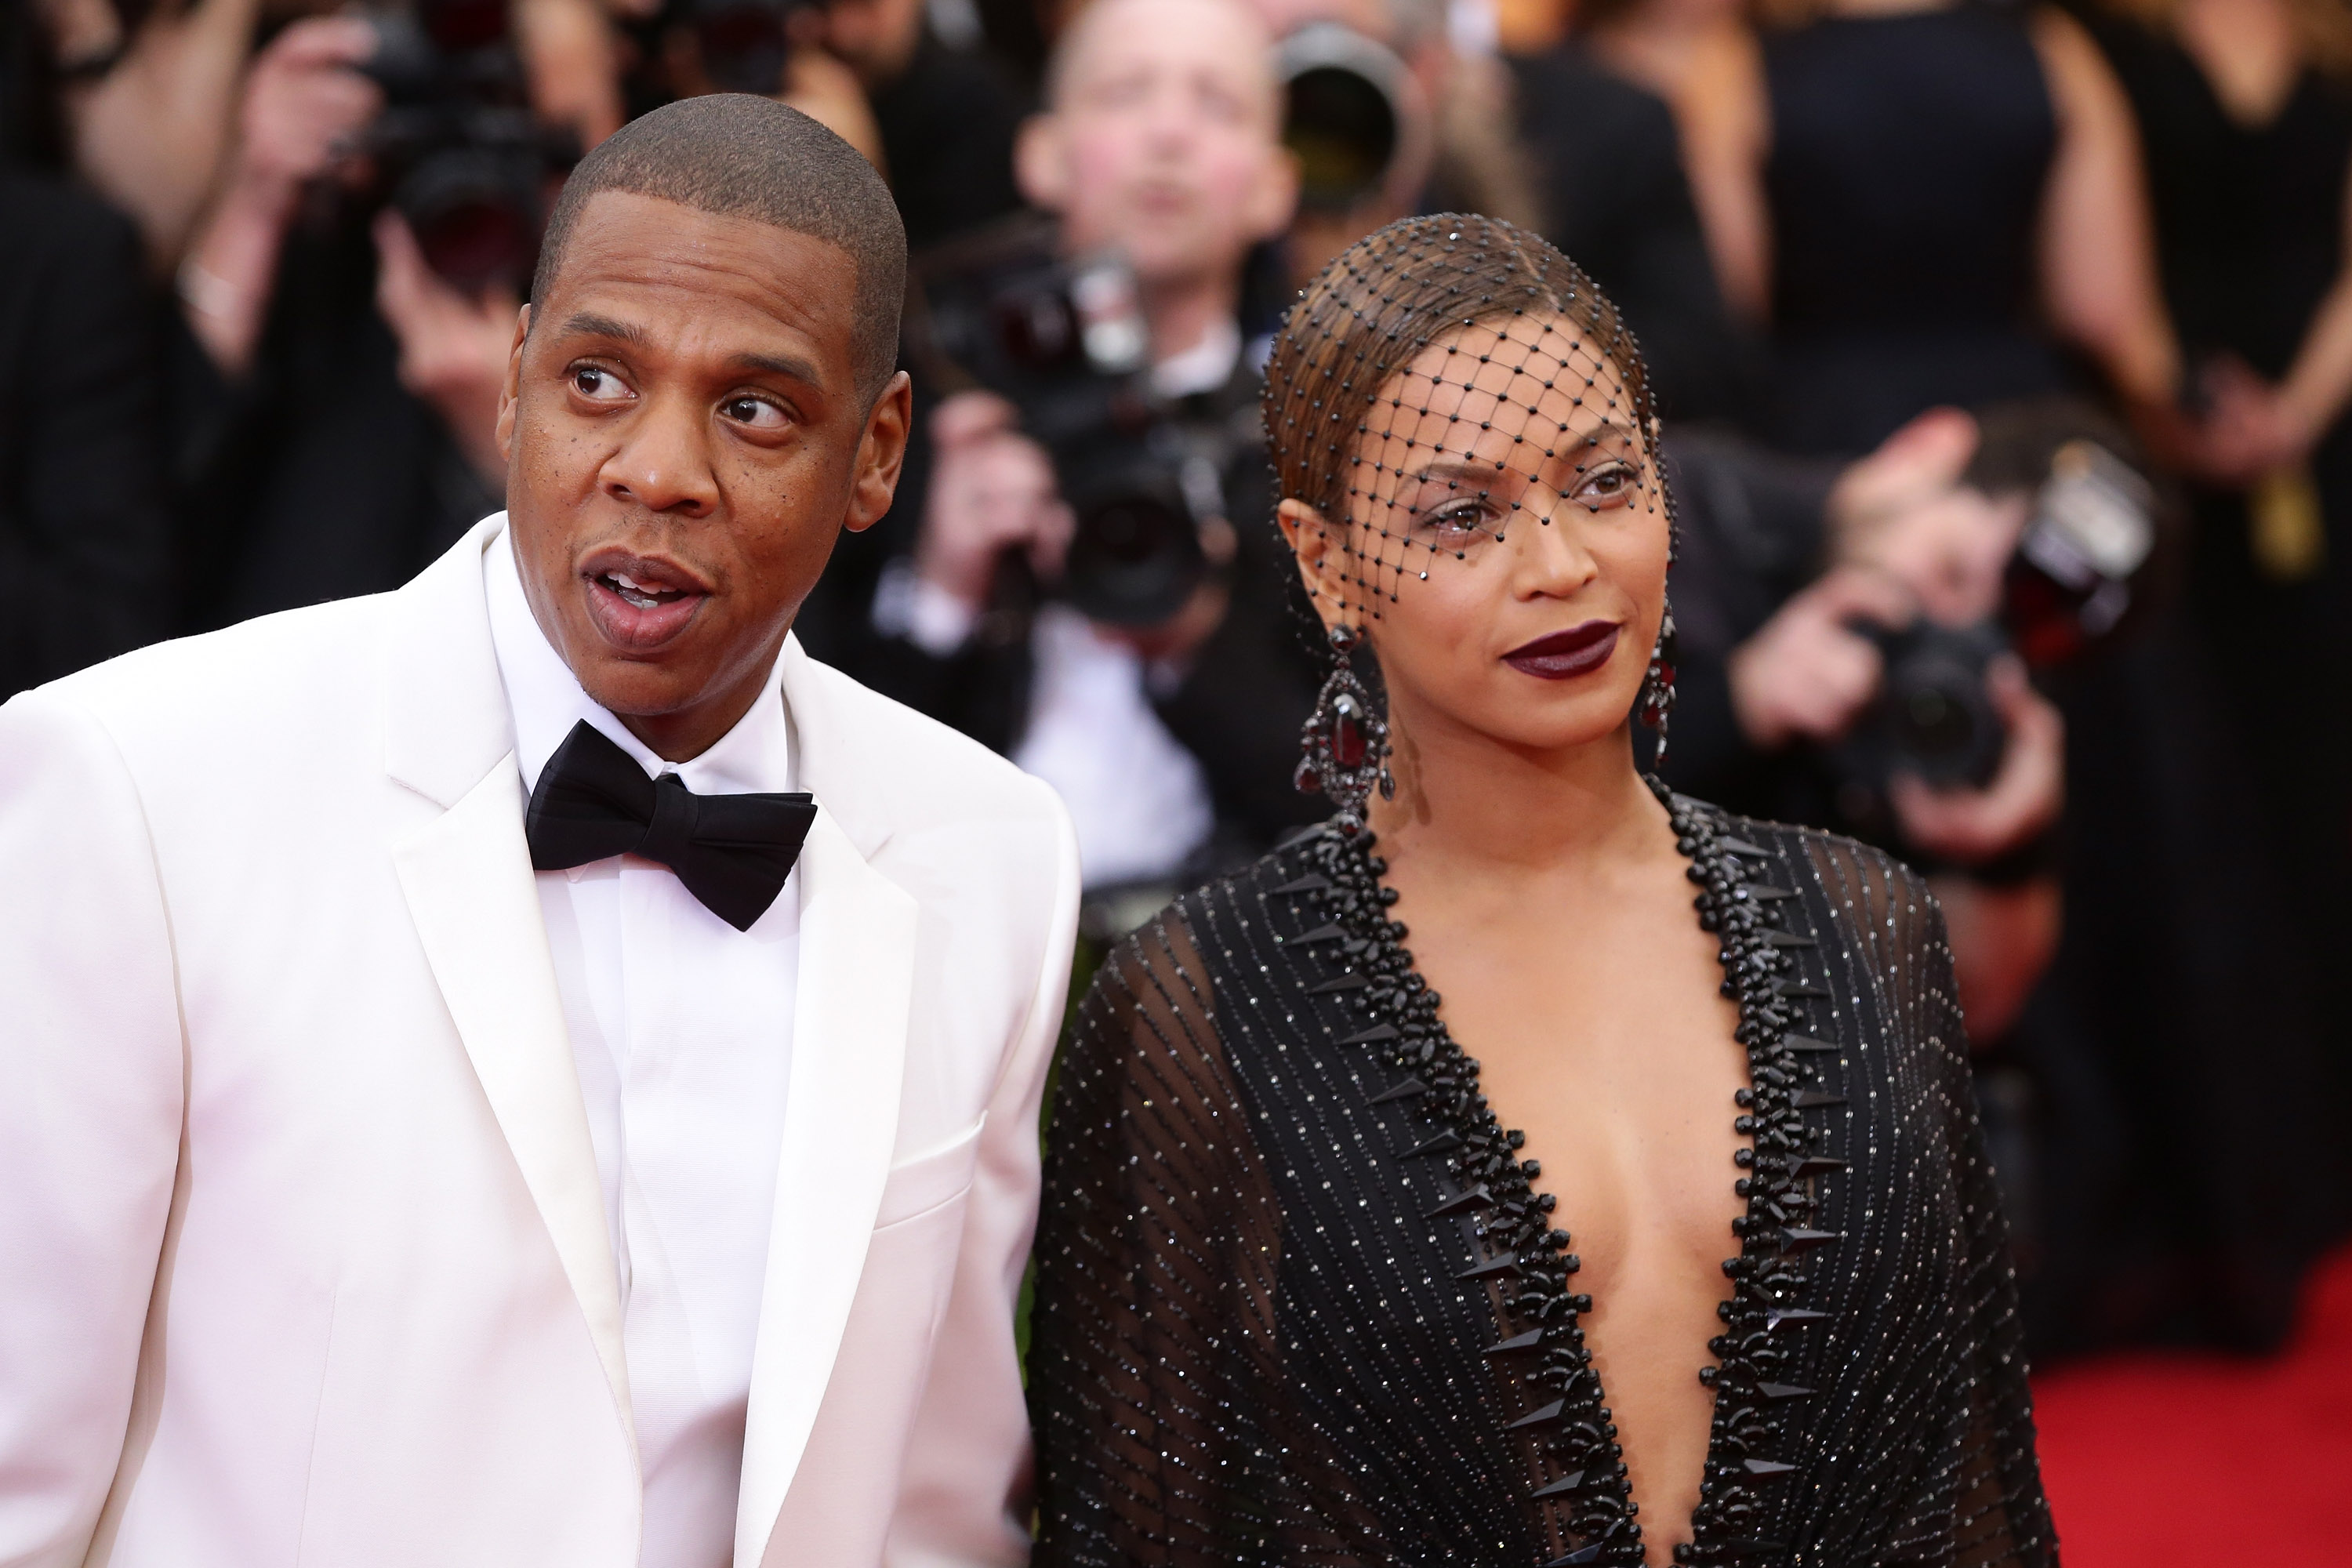 Beyonce and Jay-Z attend the  Charles James: Beyond Fashion  Costume Institute Gala at the Metropolitan Museum of Art on May 5, 2014 in New York City.